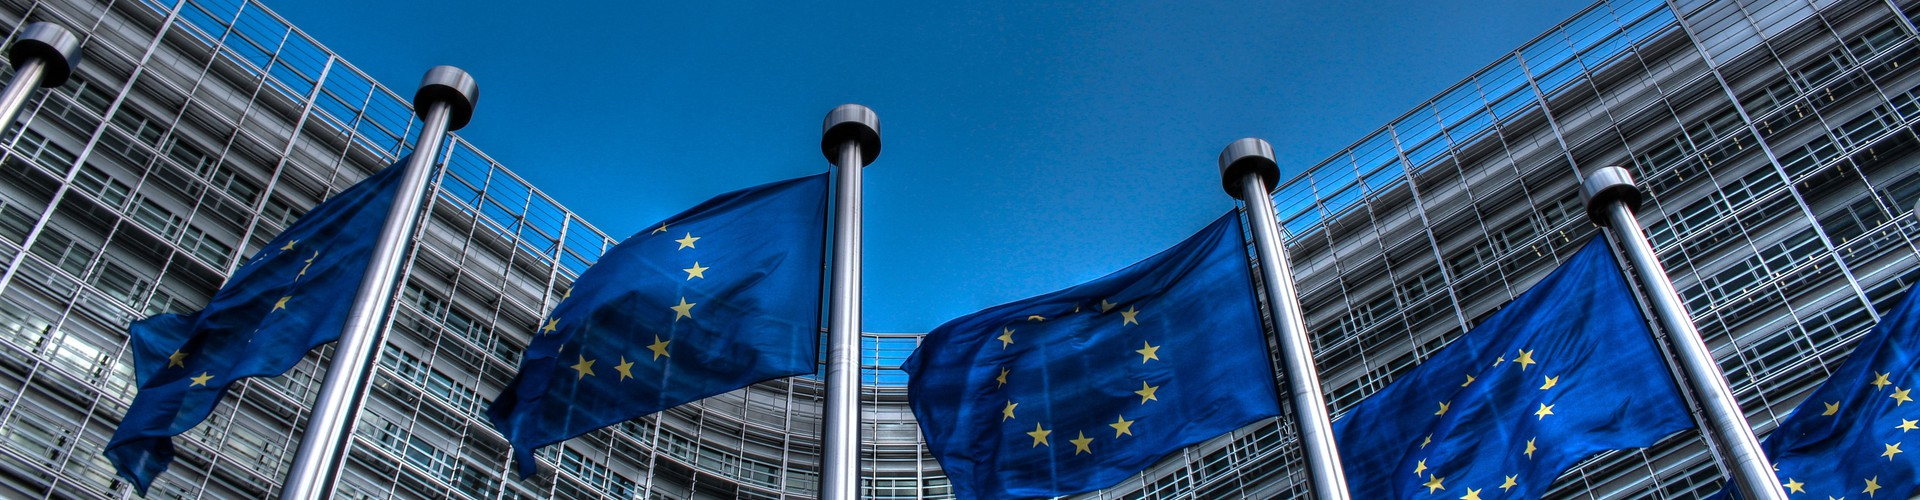 European Union flags in front of the Berlaymont Building, Brussels